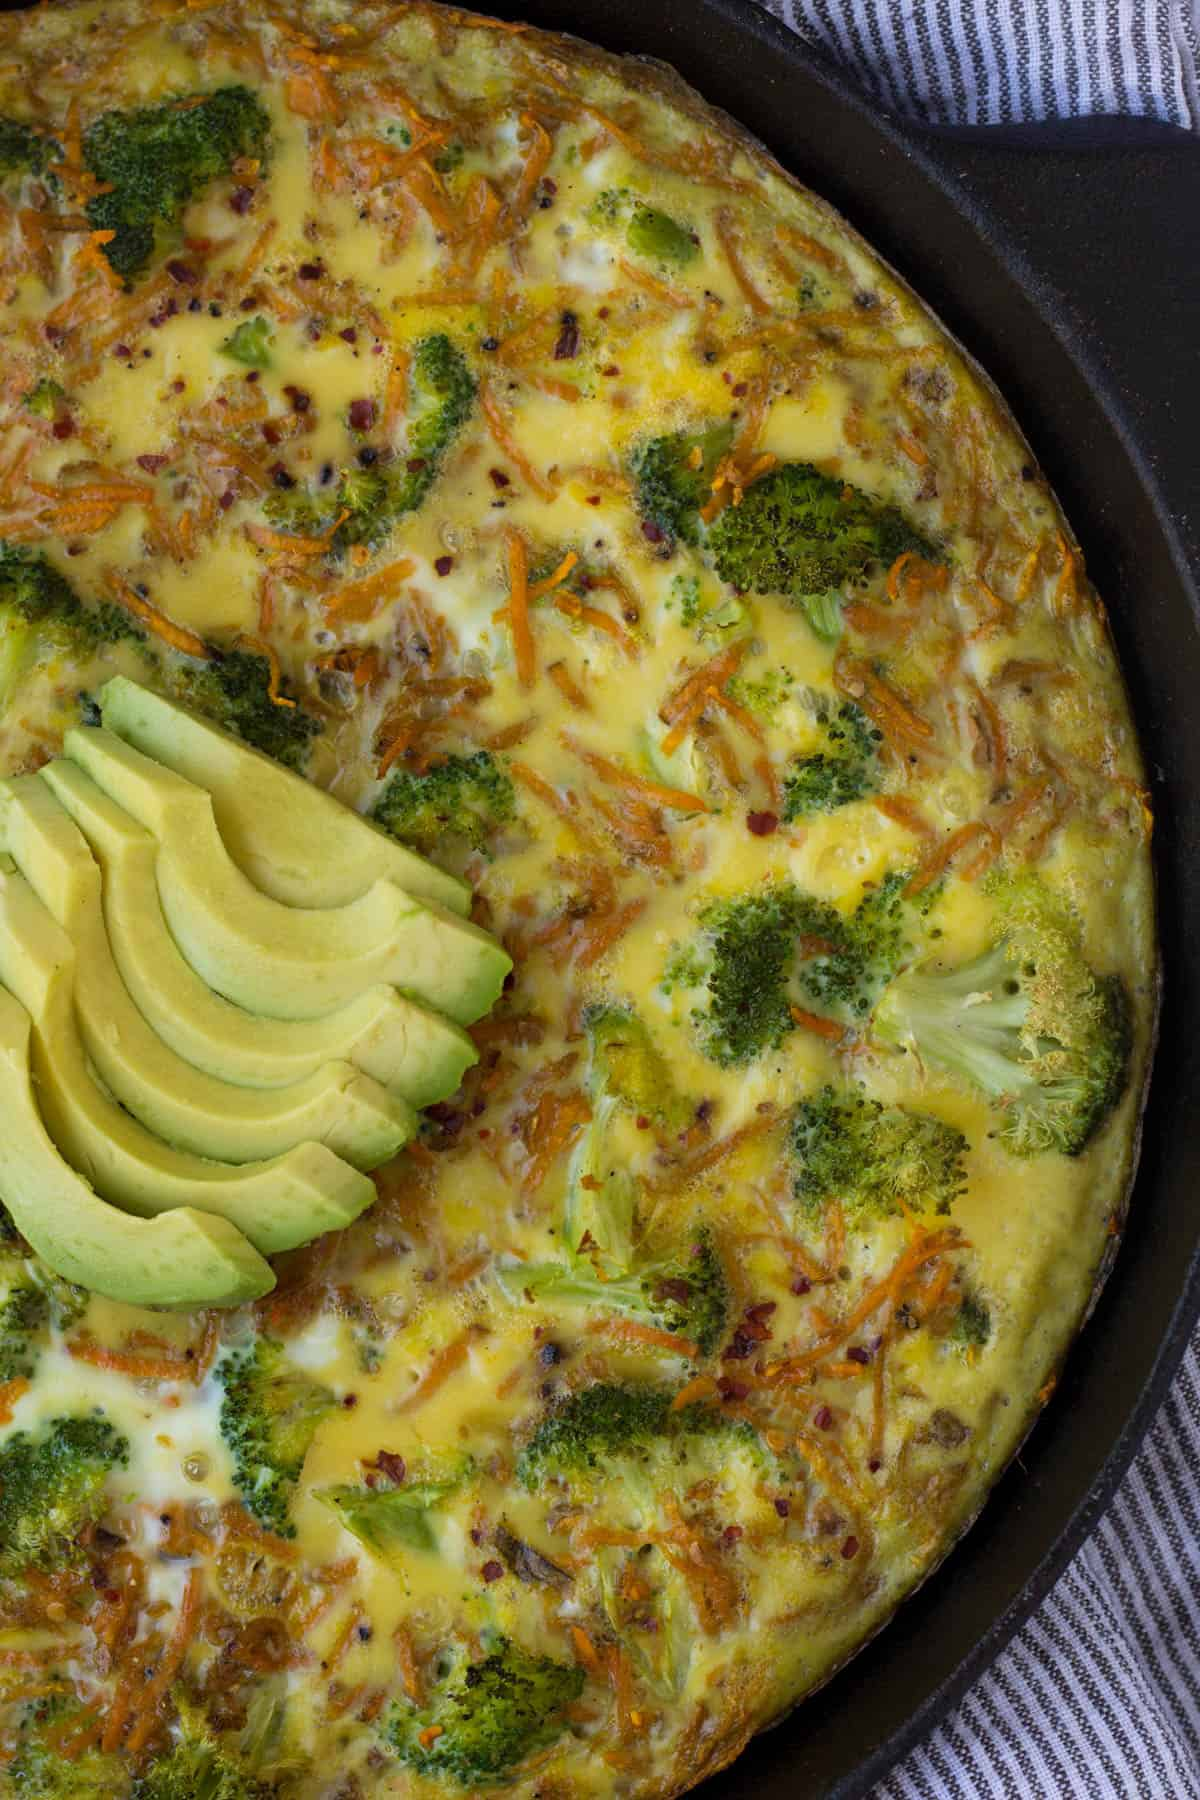 An easy and healthy breakfast, this Sweet Potato Broccoli Frittata packs veggies, carbs, protein, and healthy fats and is paleo and Whole30 approved! - Eat the Gains